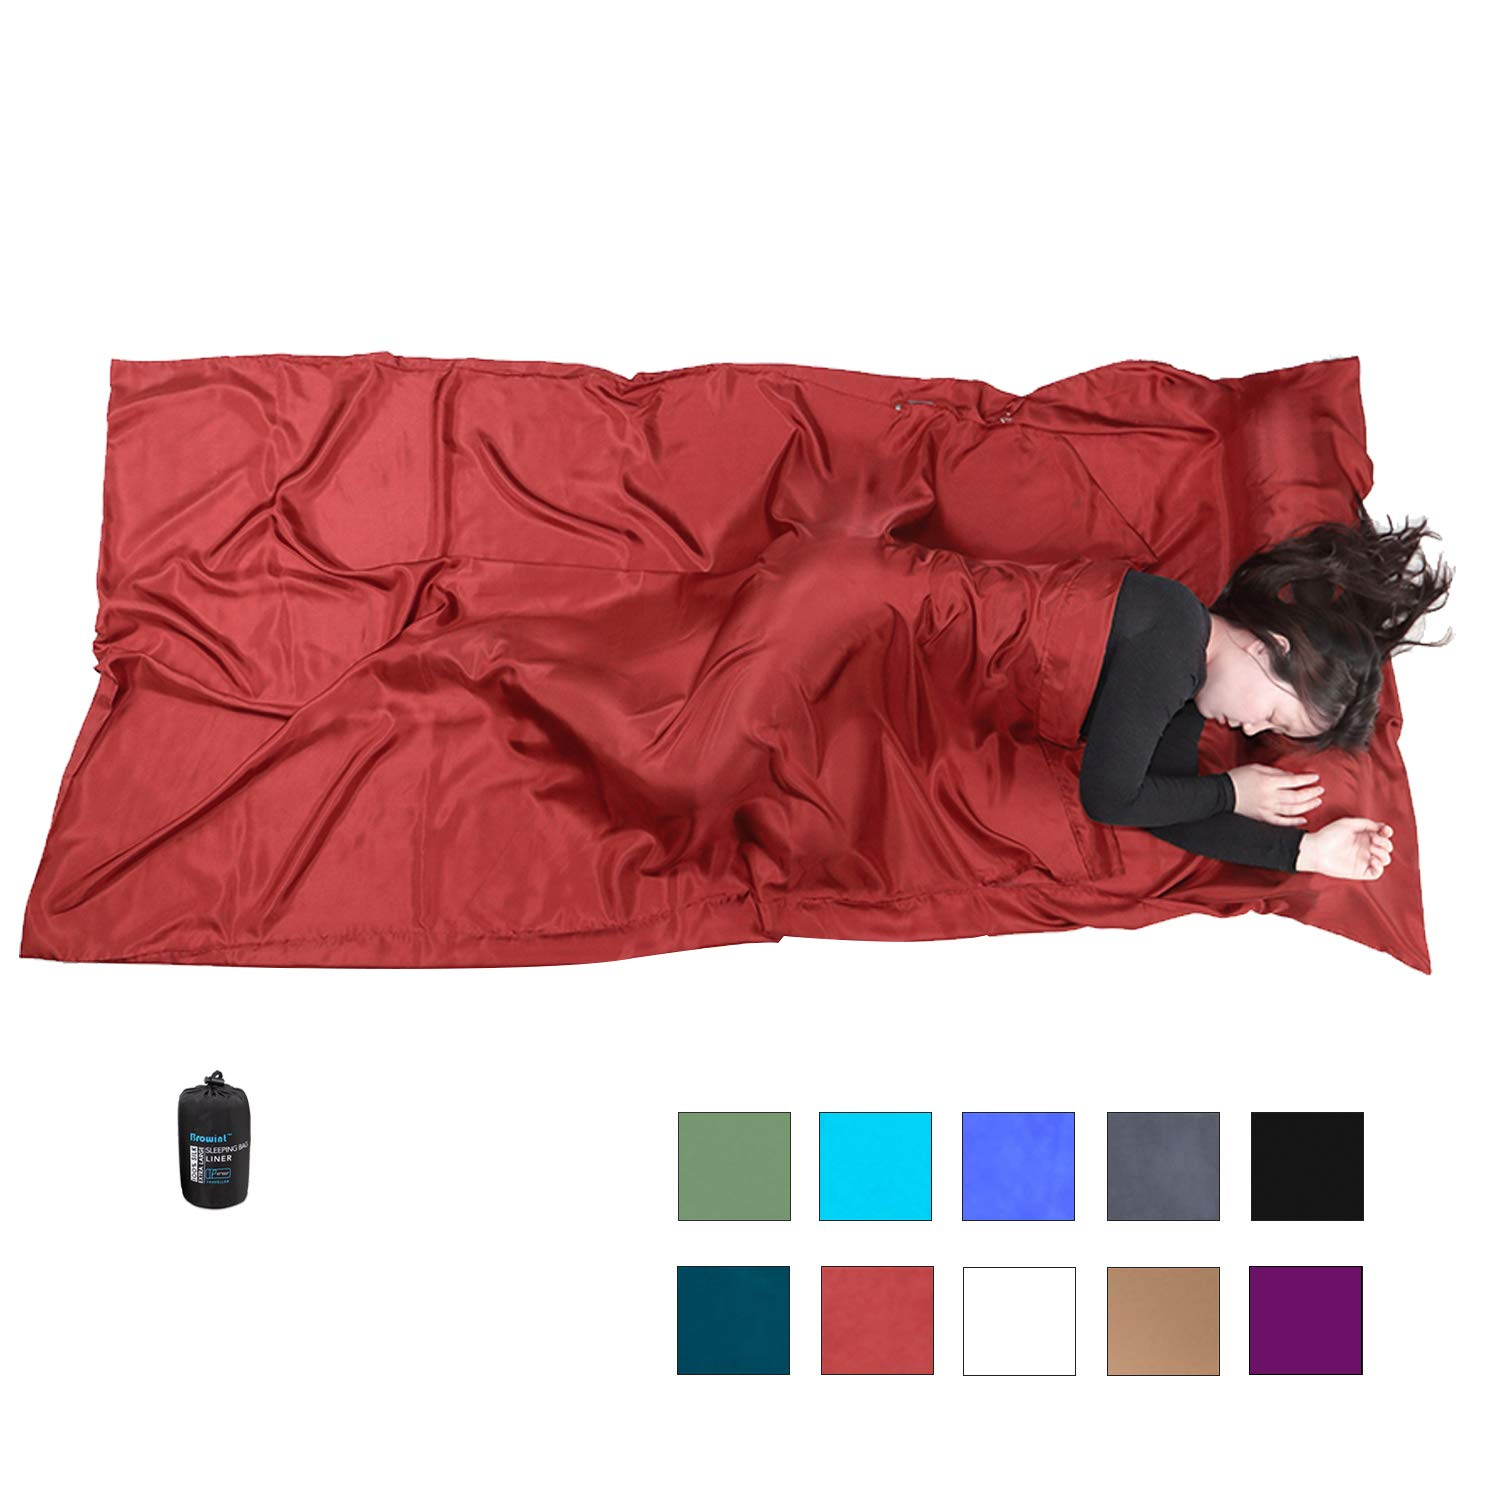 Browint Silk Sleeping Bag Liner, Silk Sleep Sack, Extra Wide 87''x43'', Lightweight Travel and Camping Sheet for Hotels, More Colors for Option, Reinforced Gussets